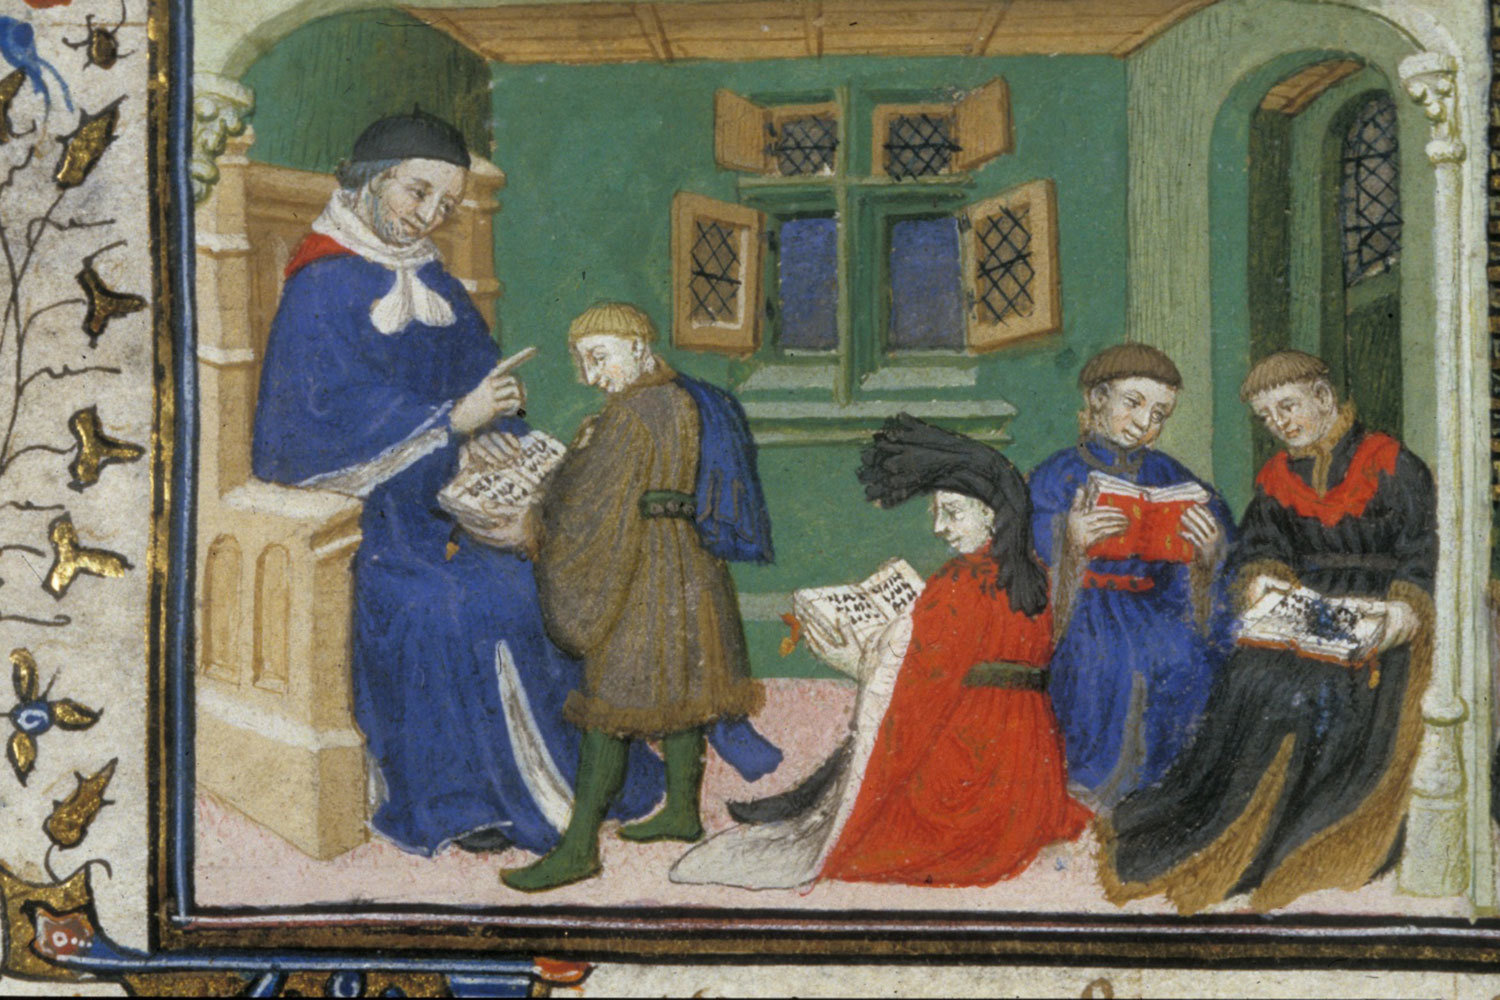 Aristotle and Alexander from BL Royal 20 B XX, f. 10v (detail), c. 1420, unknown, British Library, Public Domain Mark